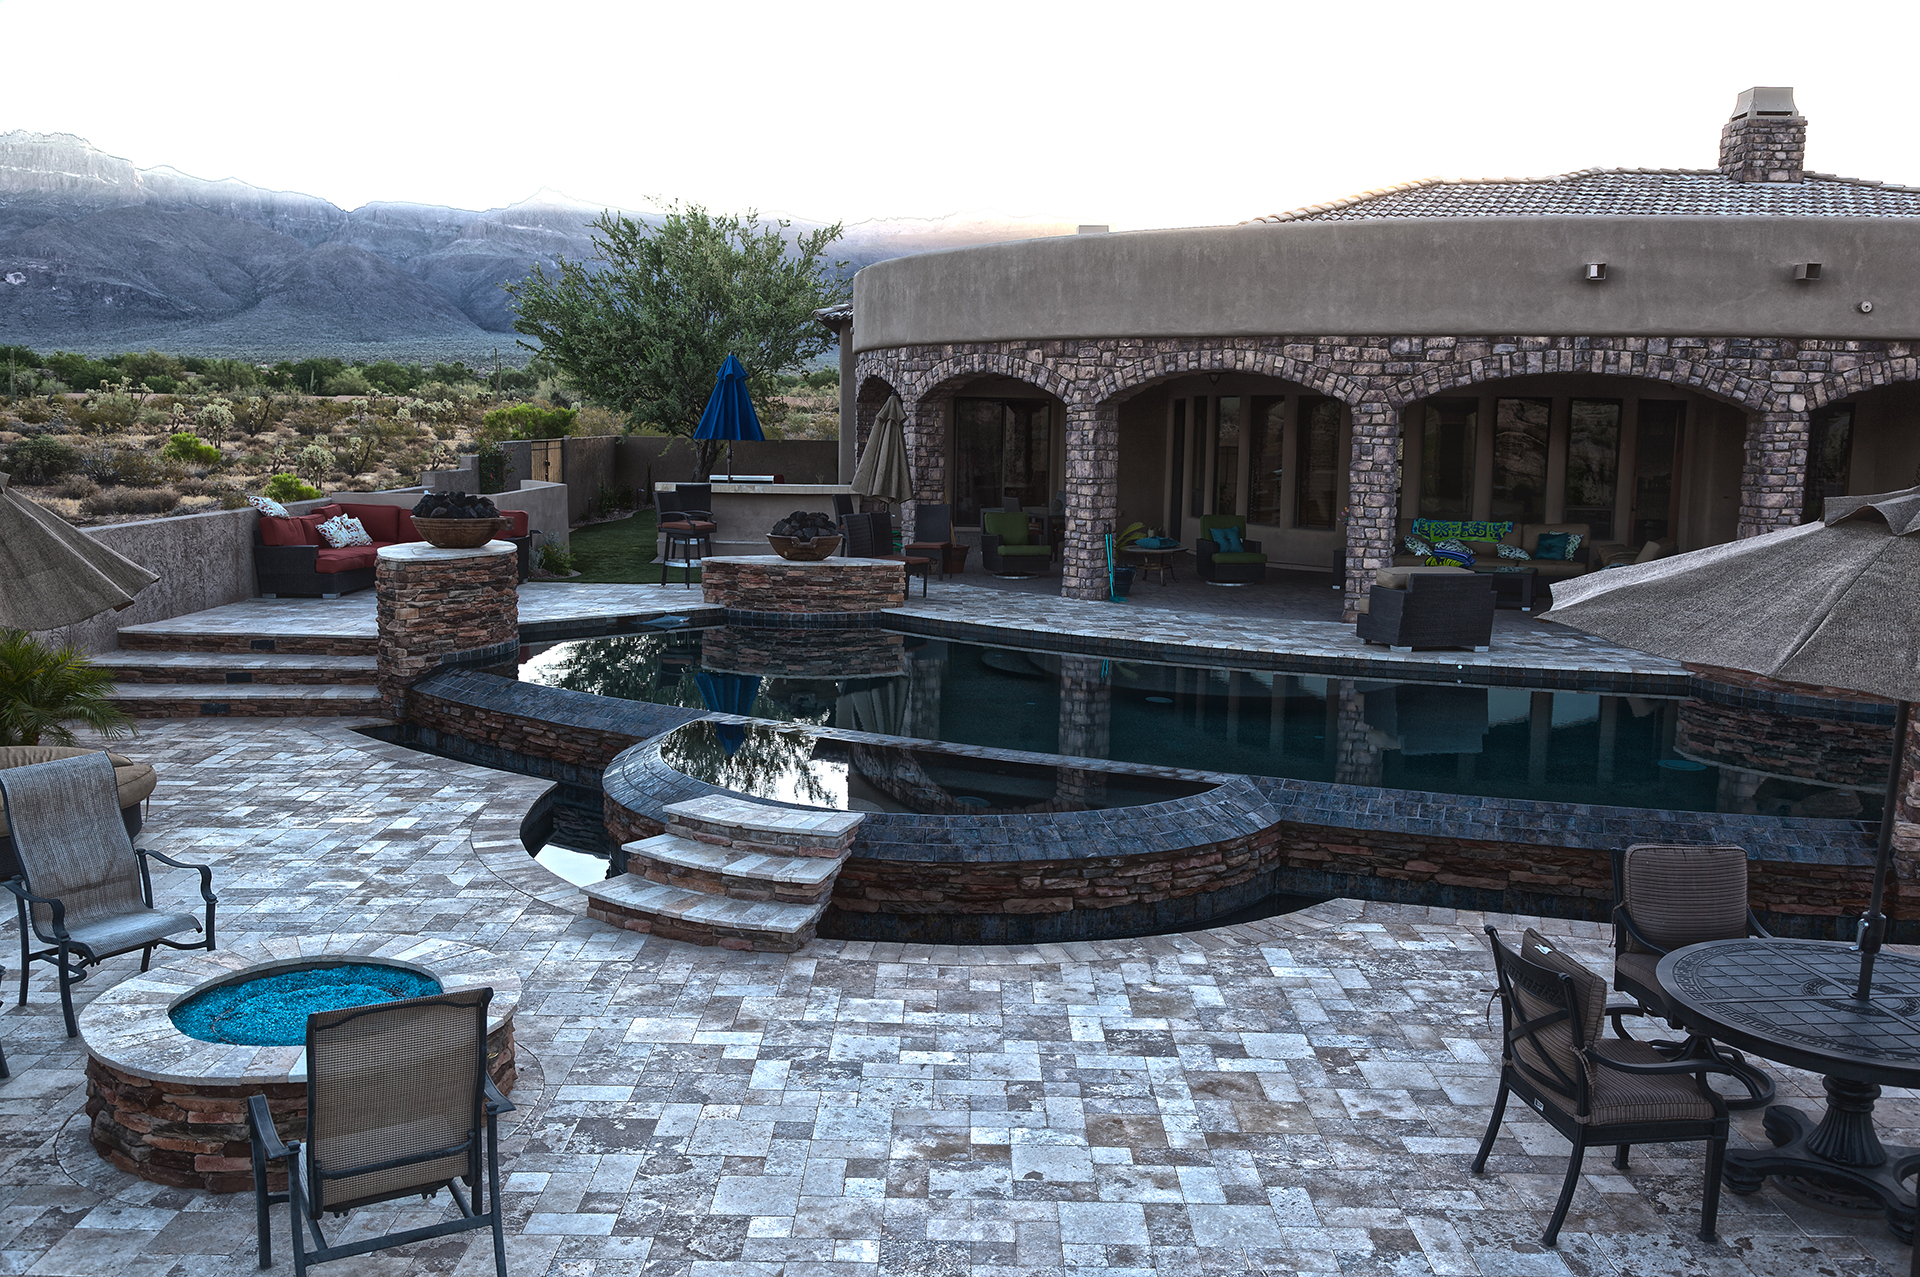 No limit pools spas coupons near me in mesa 8coupons for Local spas near me